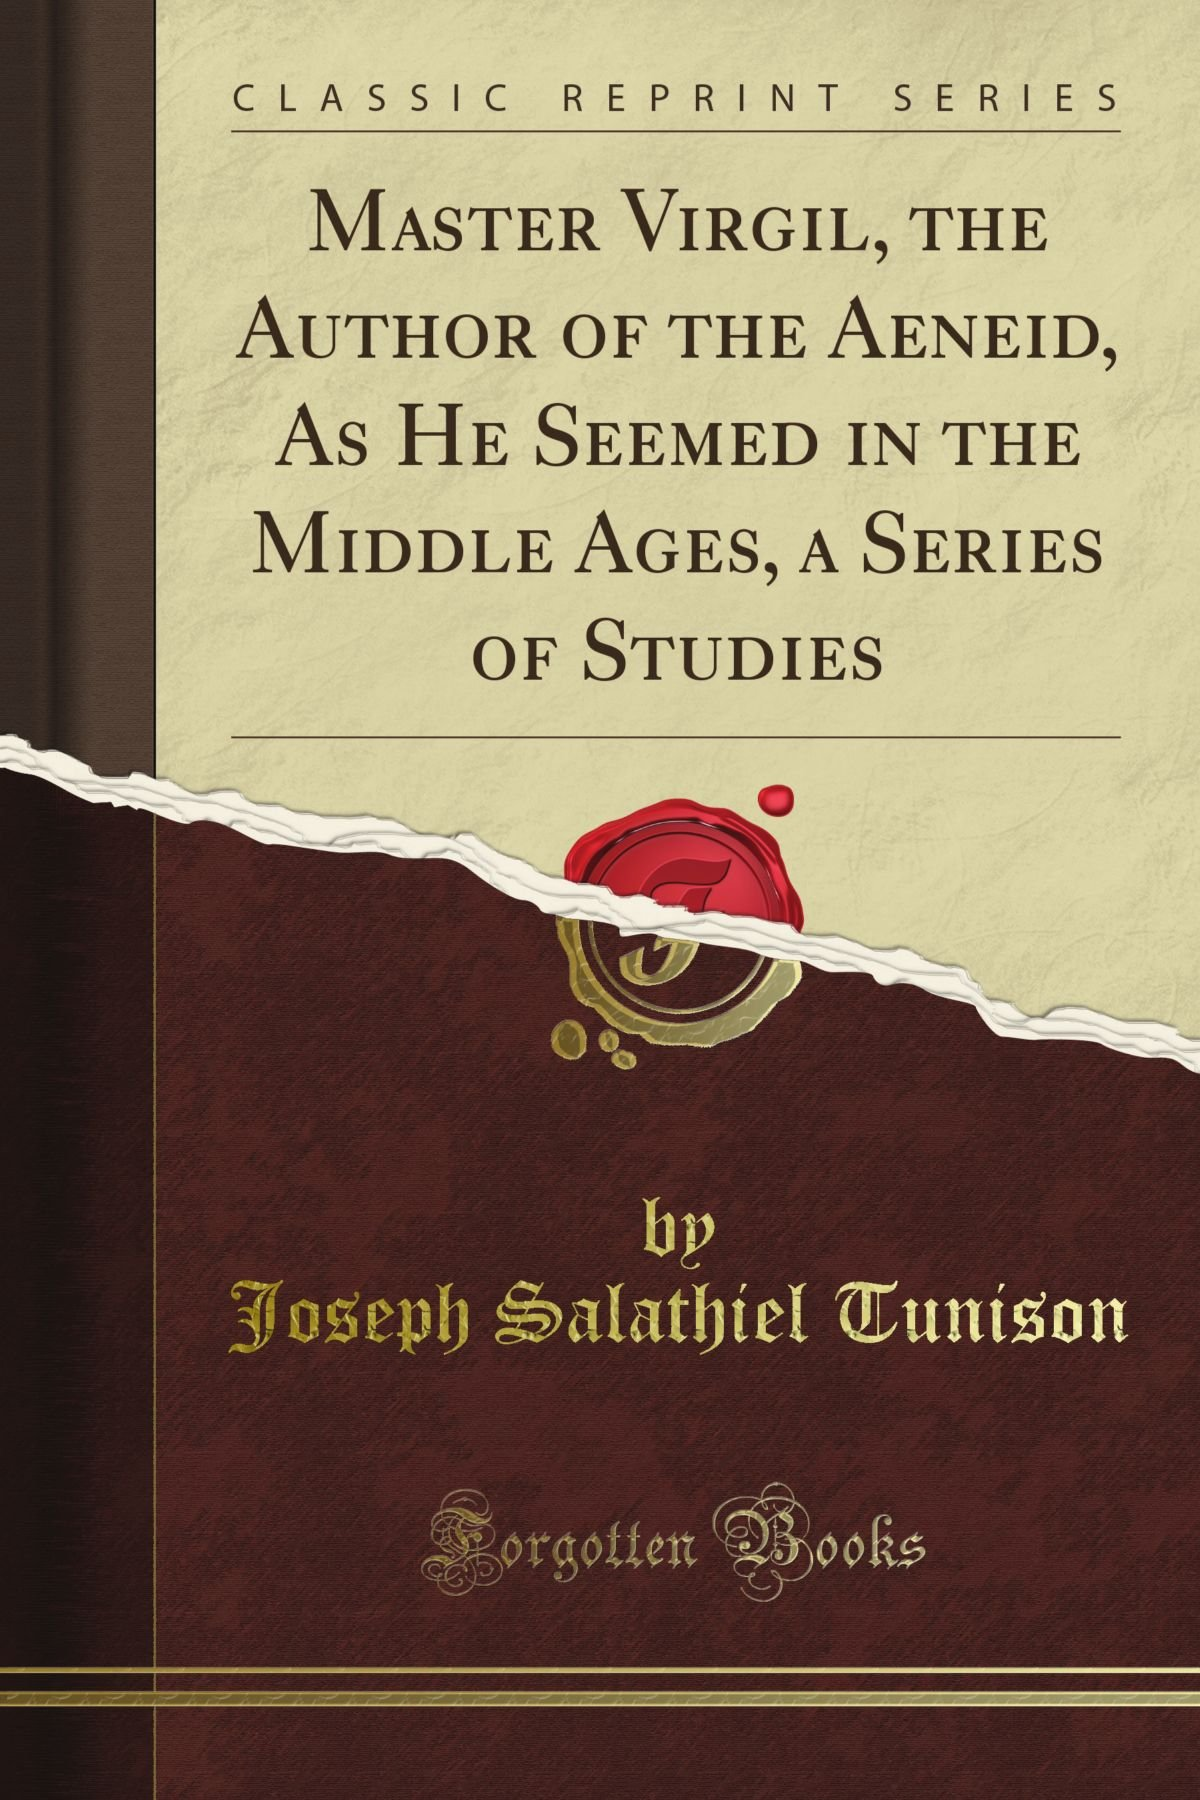 Master Virgil, the Author of the Aeneid, As He Seemed in the Middle Ages, a Series of Studies (Classic Reprint) pdf epub